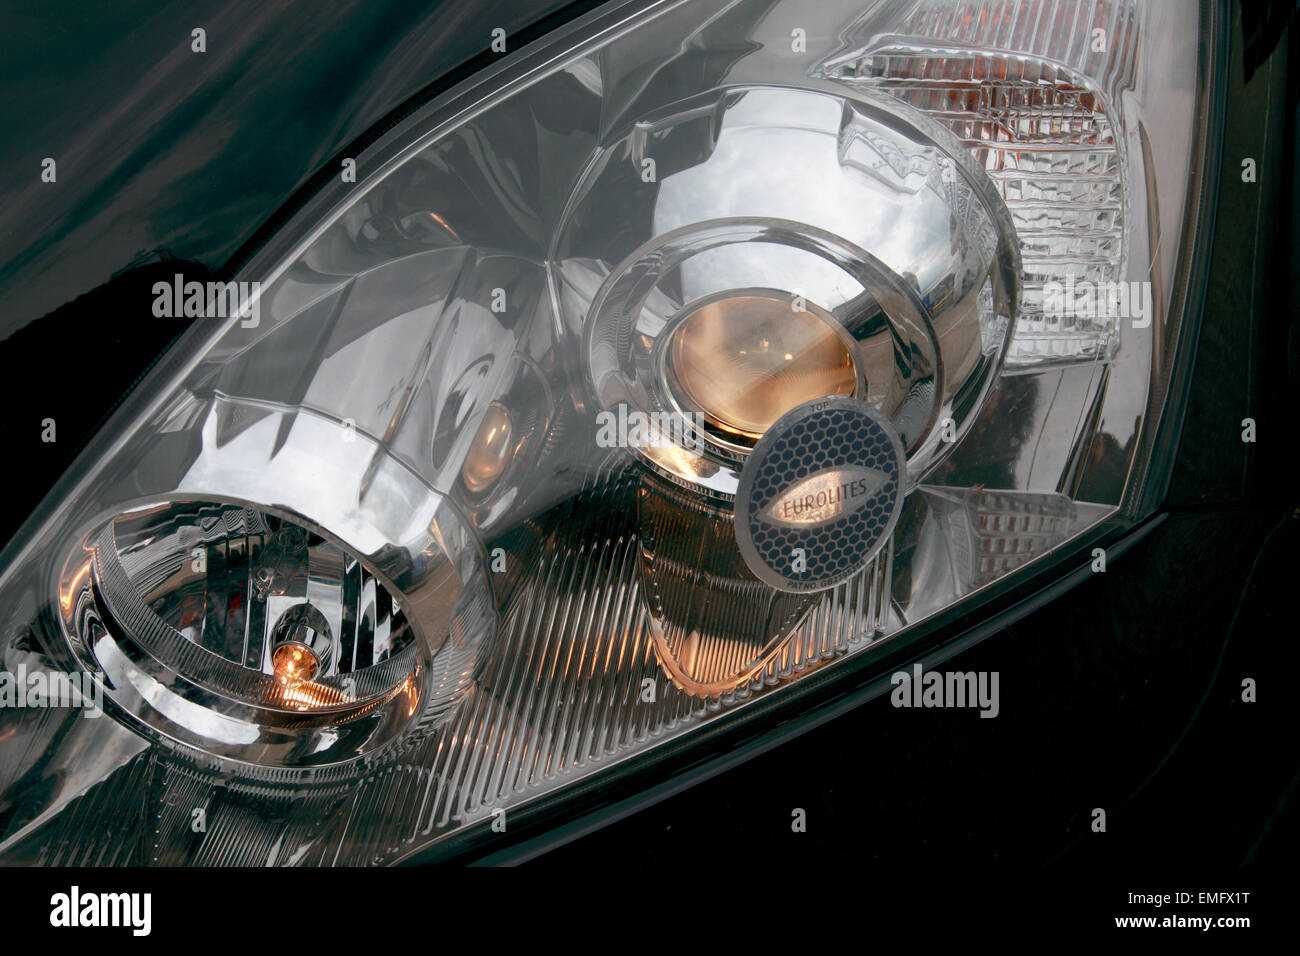 Headlamp beam adaptors fitted on to the headlights of a car - Stock Image